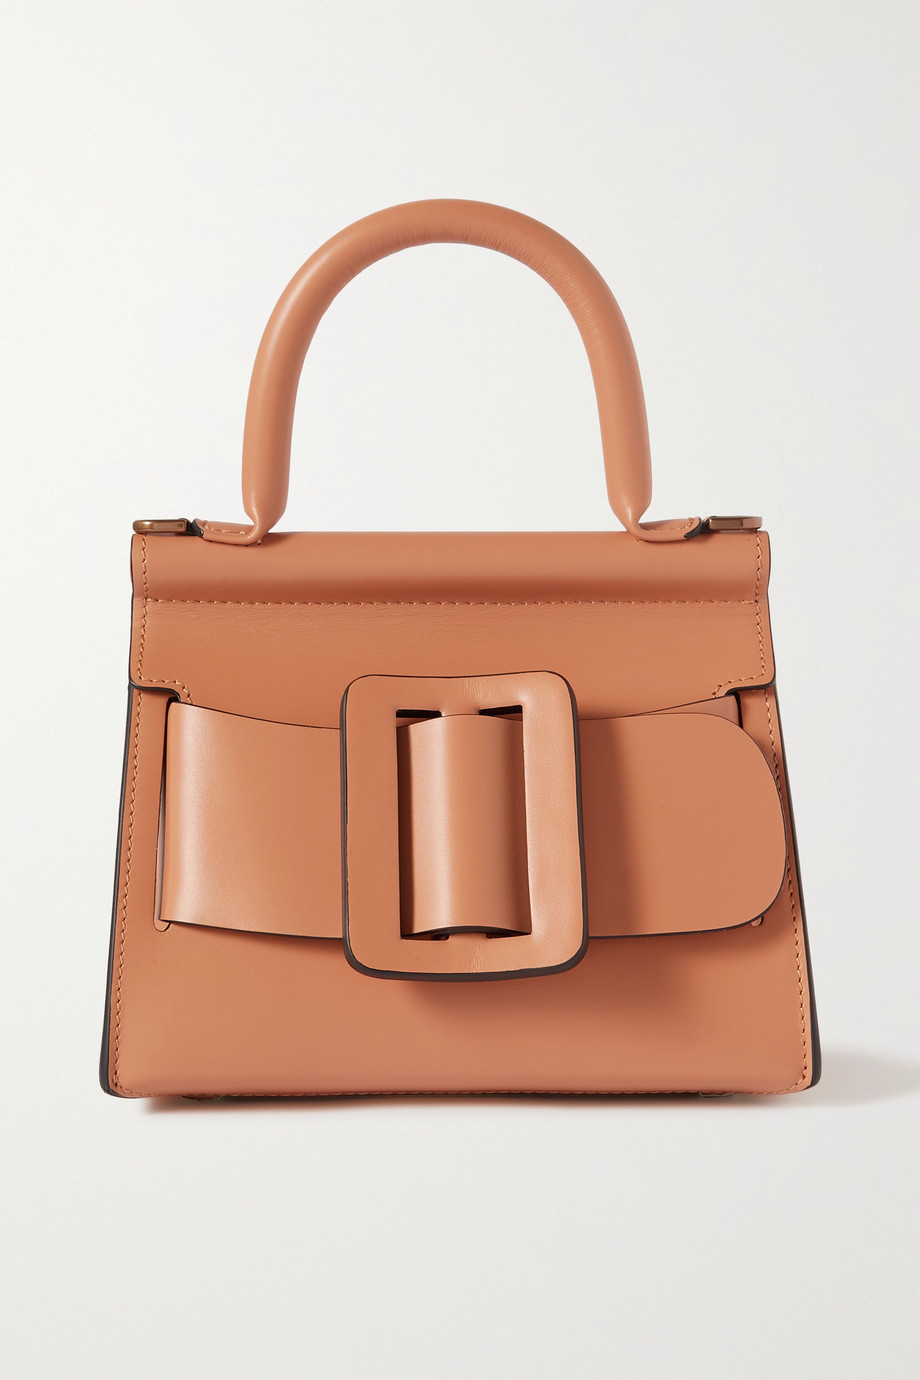 BOYY Karl 19 mini buckled leather tote,Brown